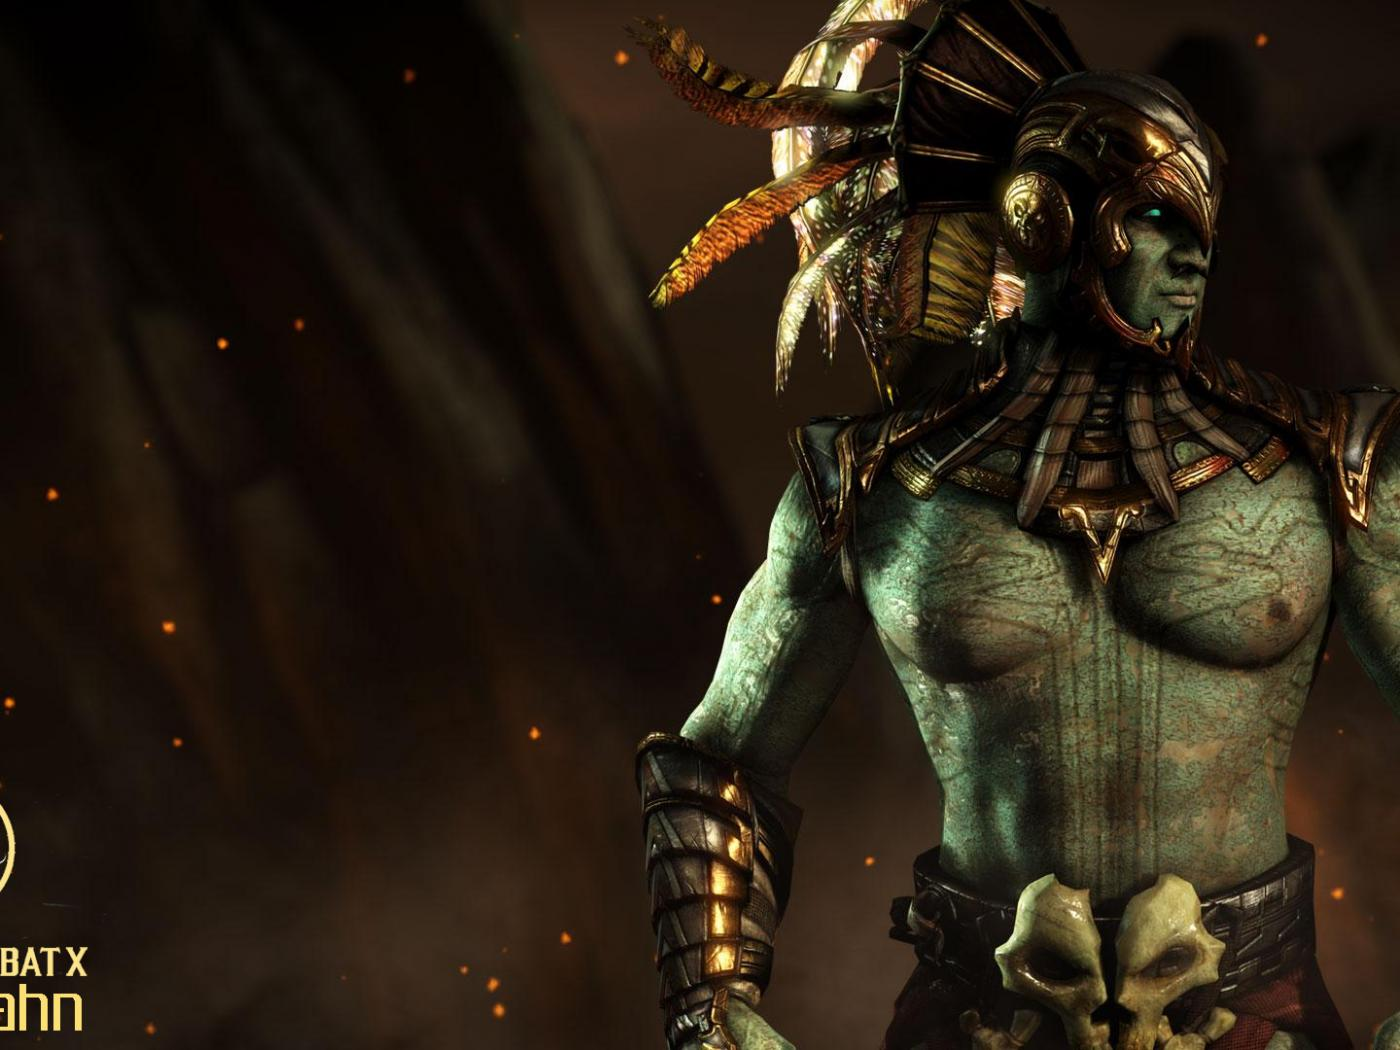 Free download Mortal Kombat X Characters Kotal Kahn